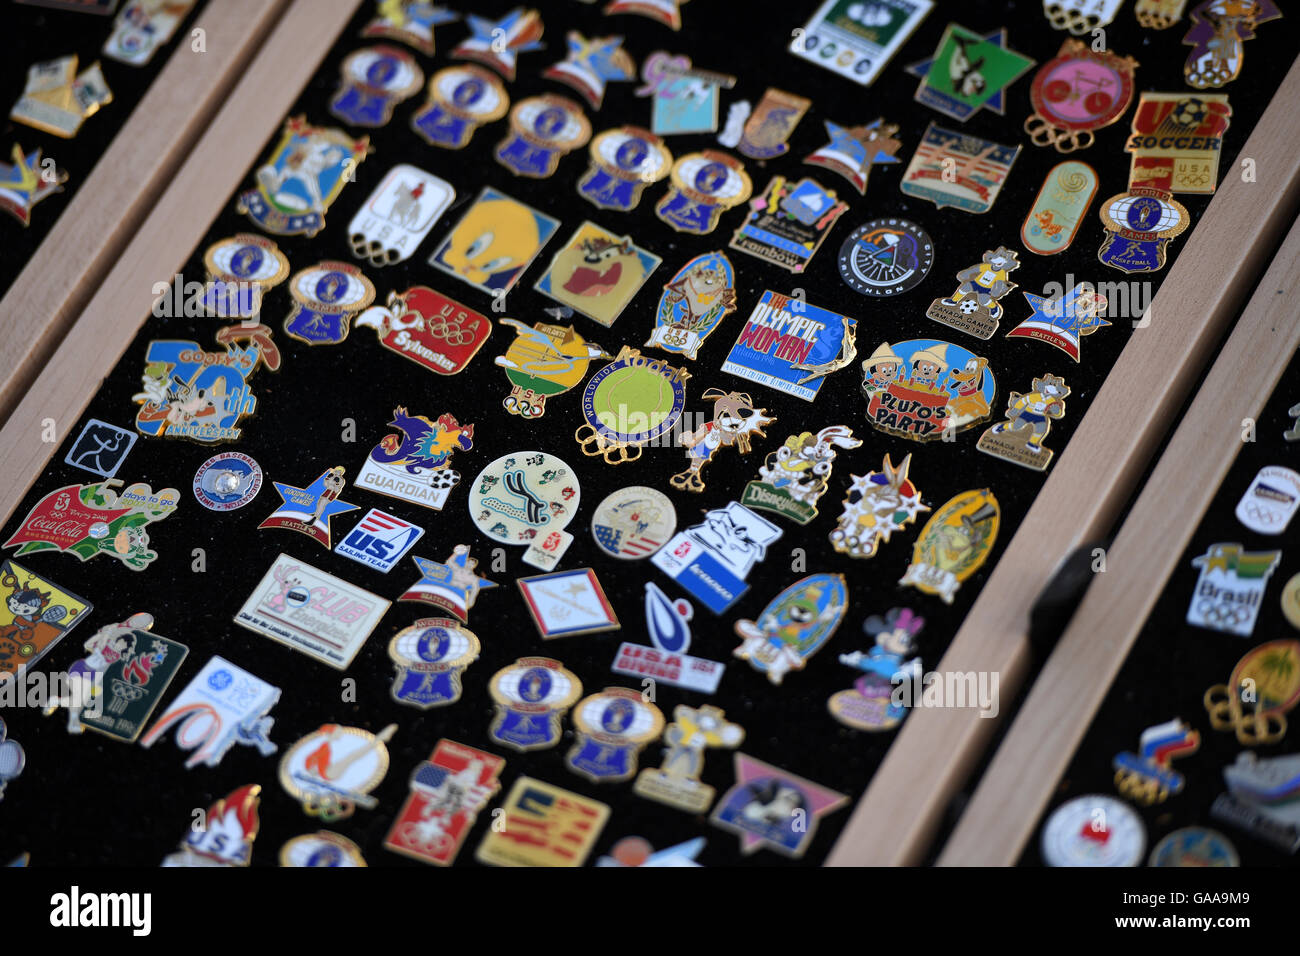 Rio de Janeiro, Brazil. 5th Aug, 2016. Historic Olympics pins are displayed on the board of a pin collector who - Stock Image